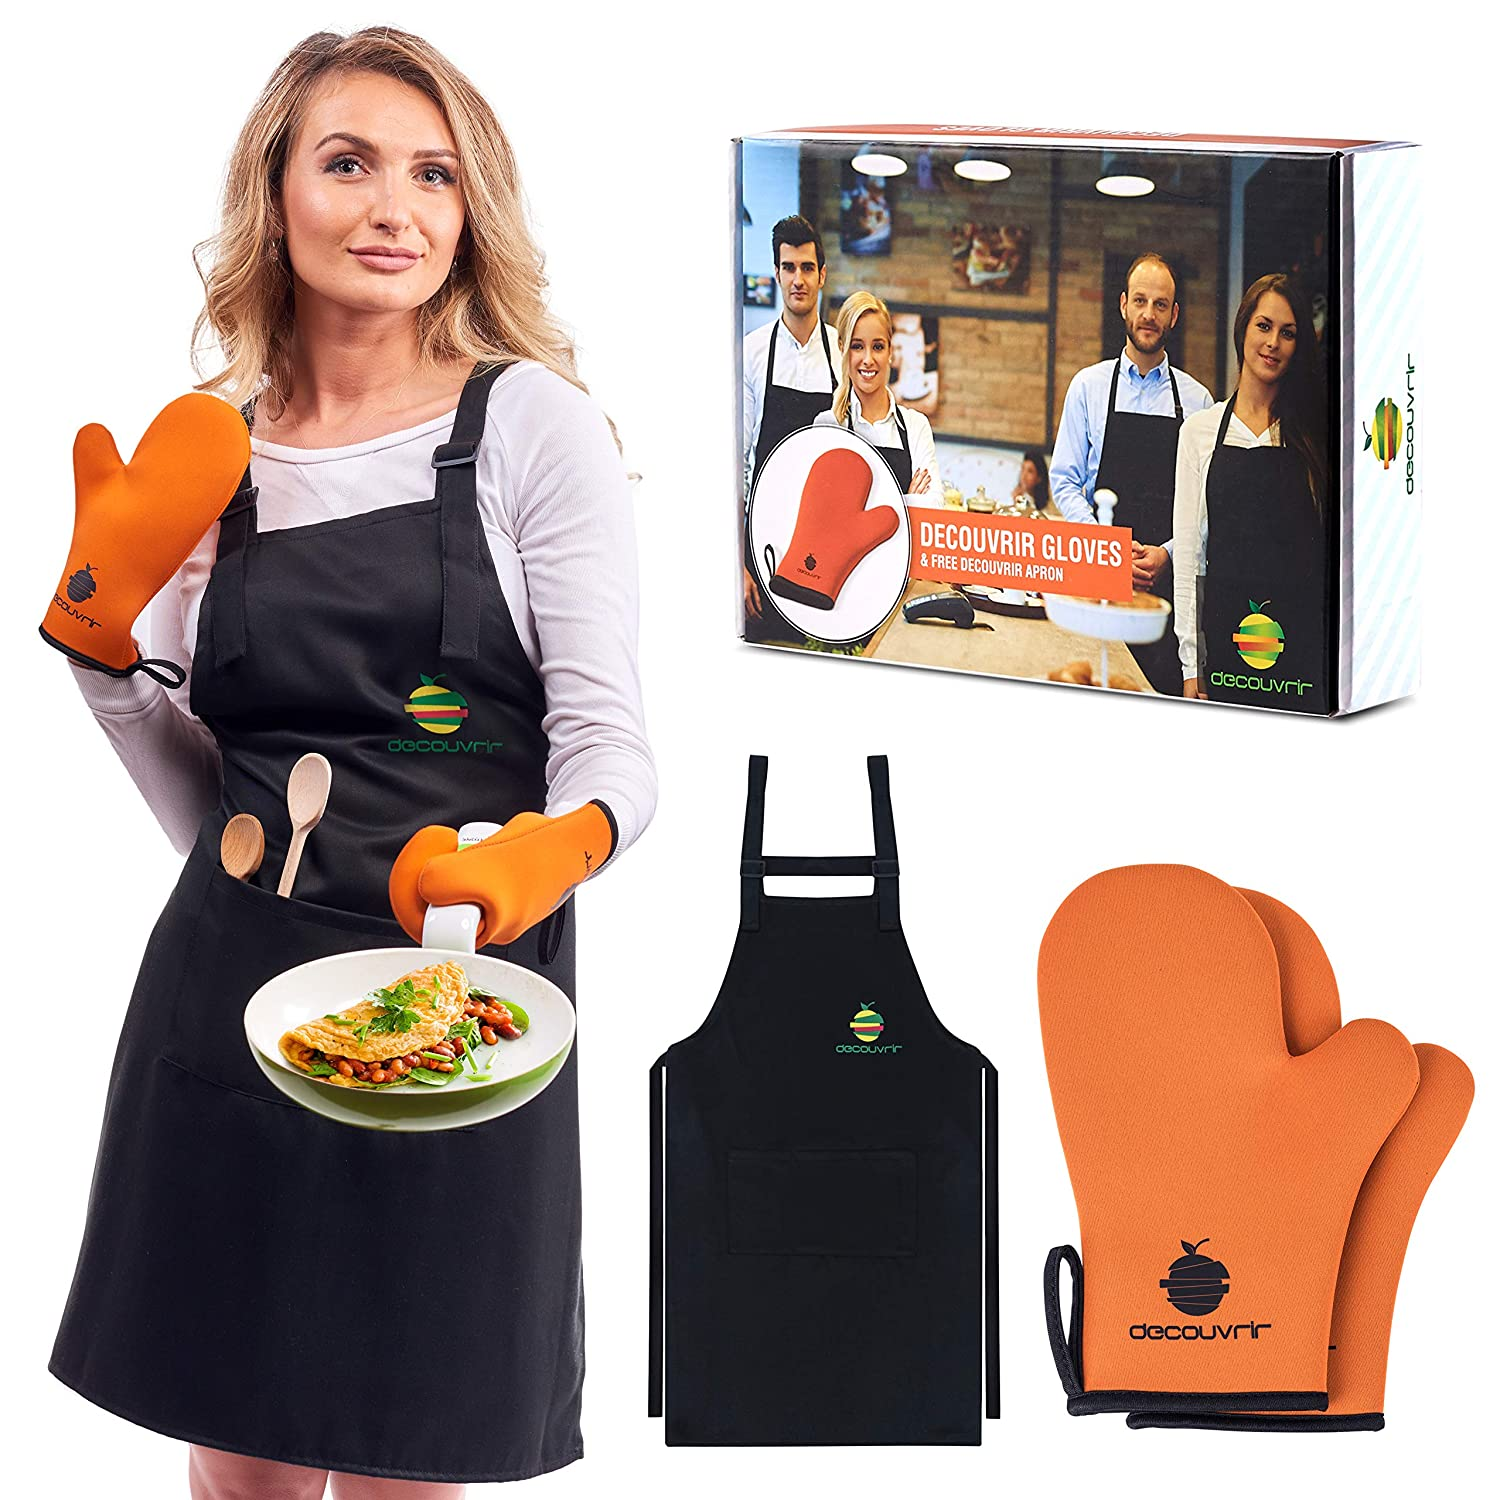 Neoprene Oven Mitts Apron Set| High Temperature Heat-Resistant Kitchen Mittens for Men and Women Perfect Cooking, Baking, Grilling + Adjustable Black Bib Apron + eBook with Delicious Recipes